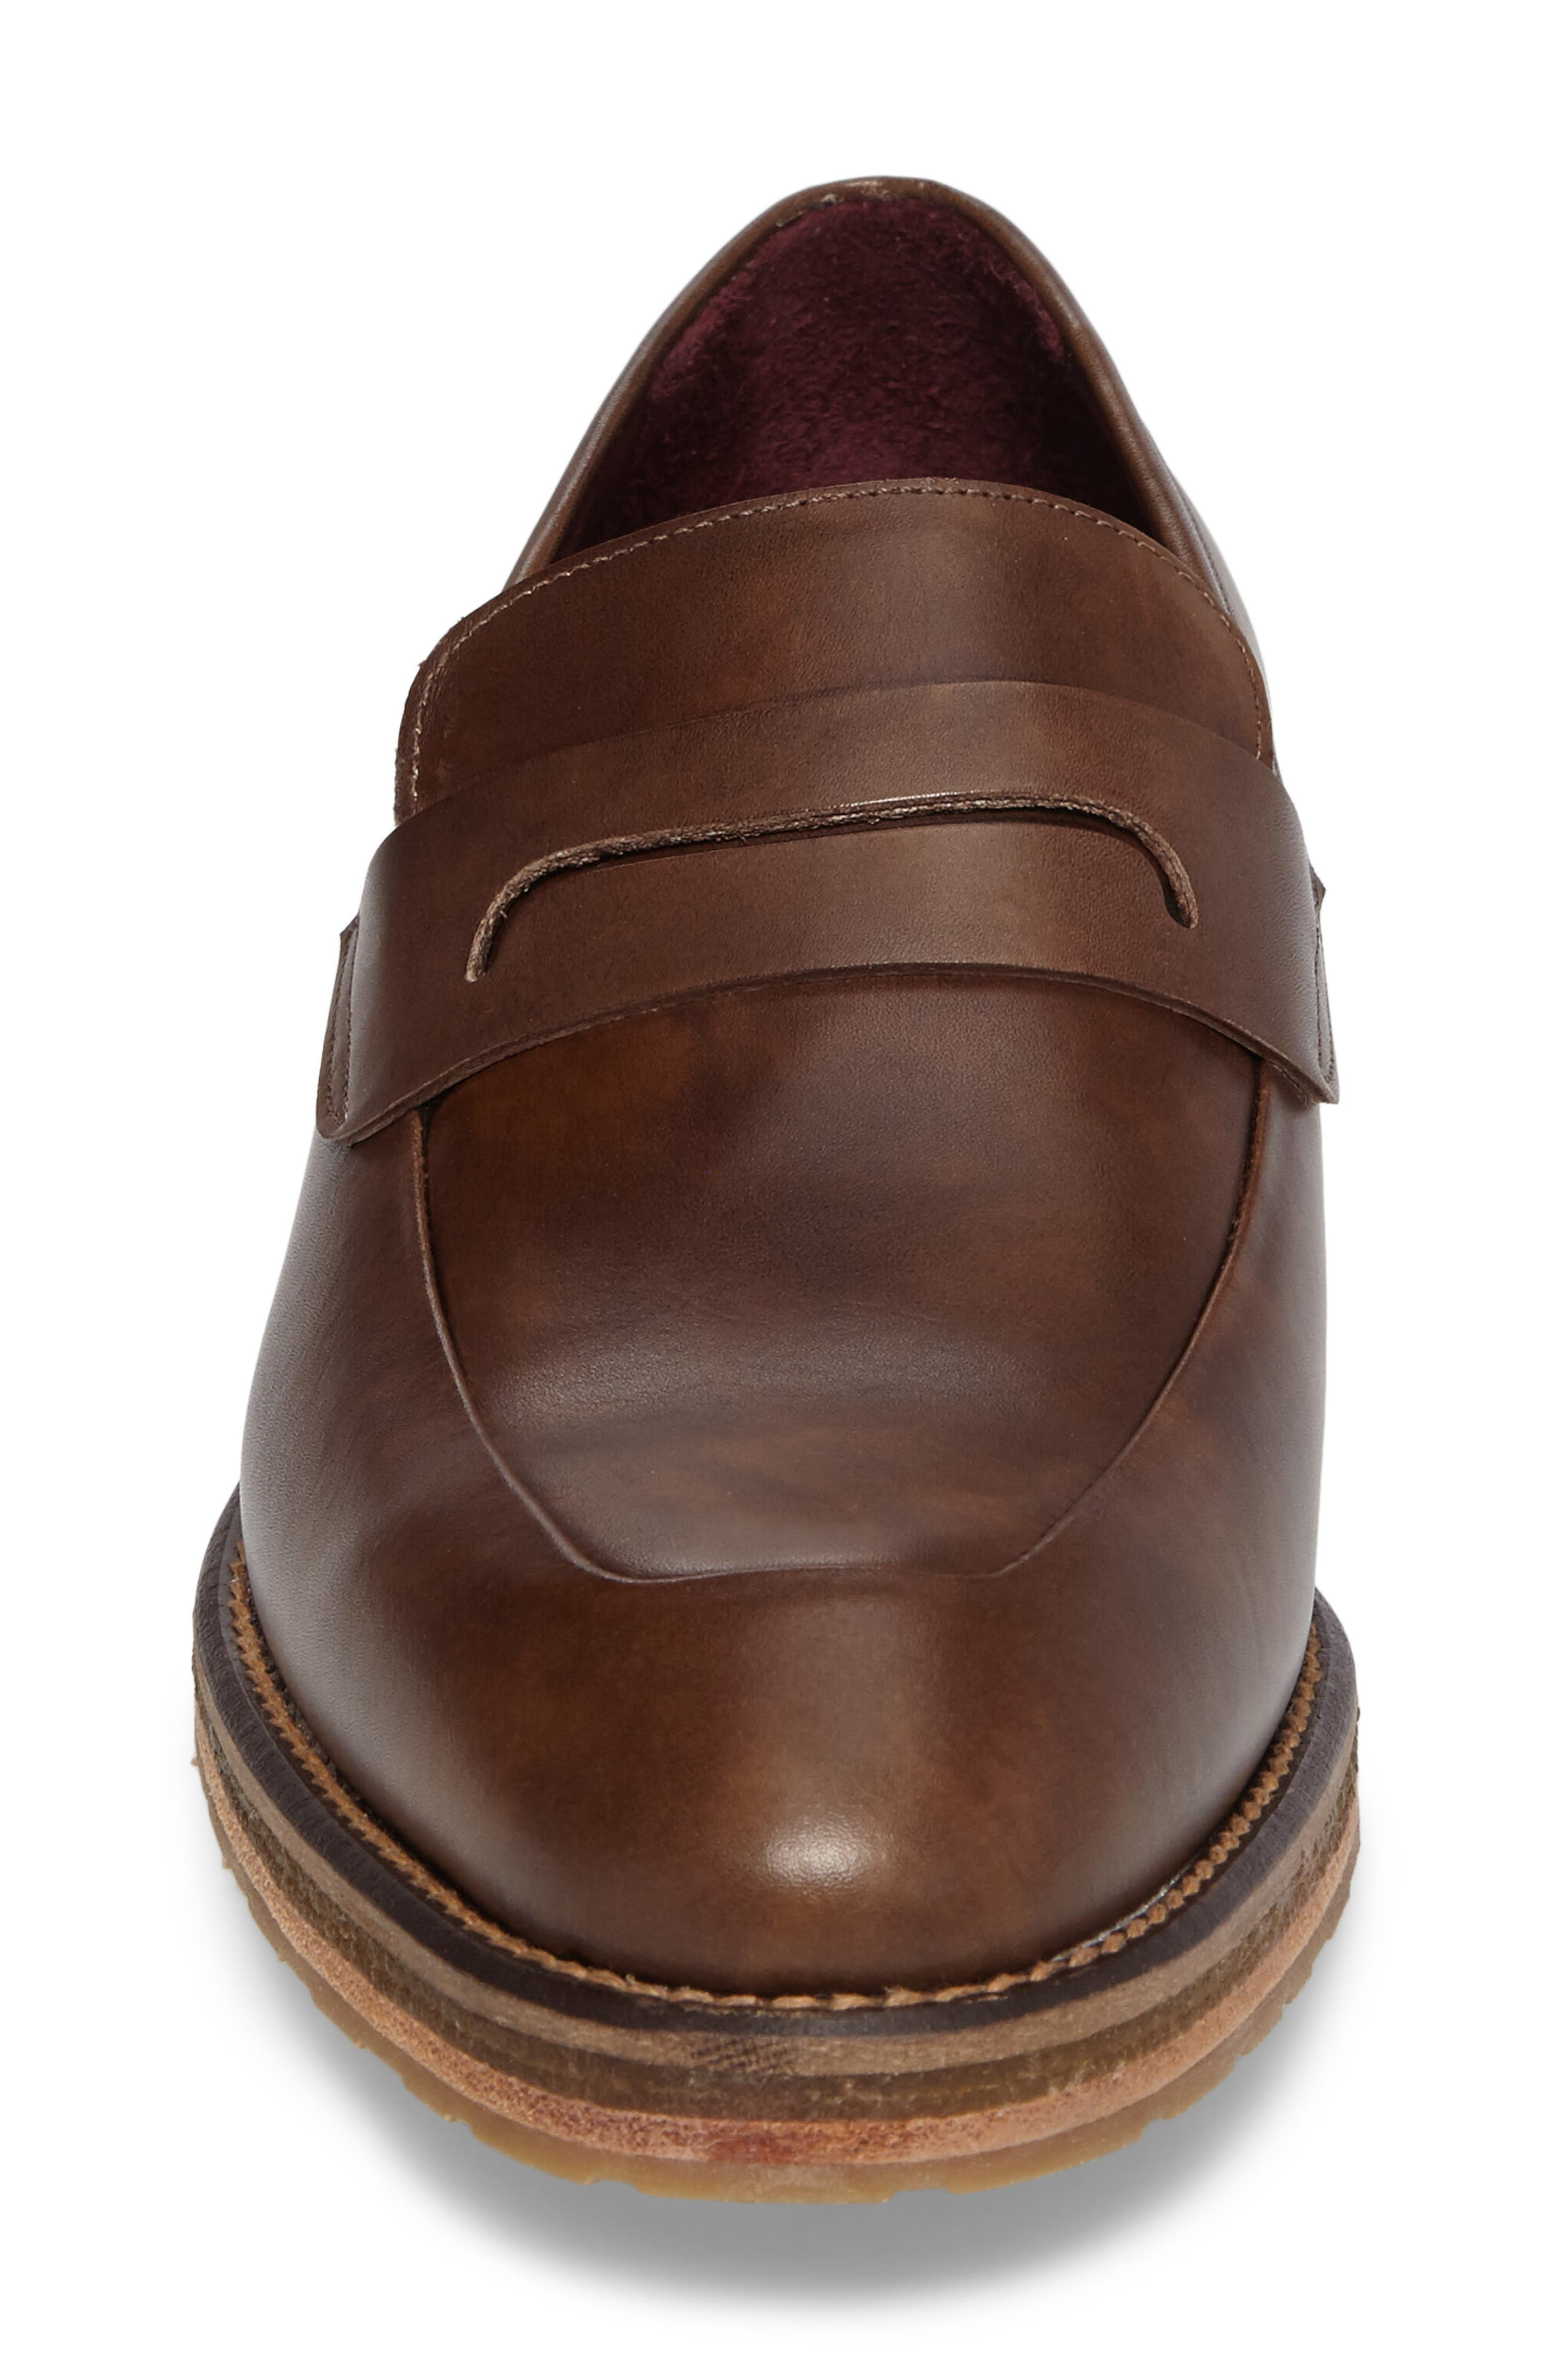 Cantonia Penny Loafer,                             Alternate thumbnail 4, color,